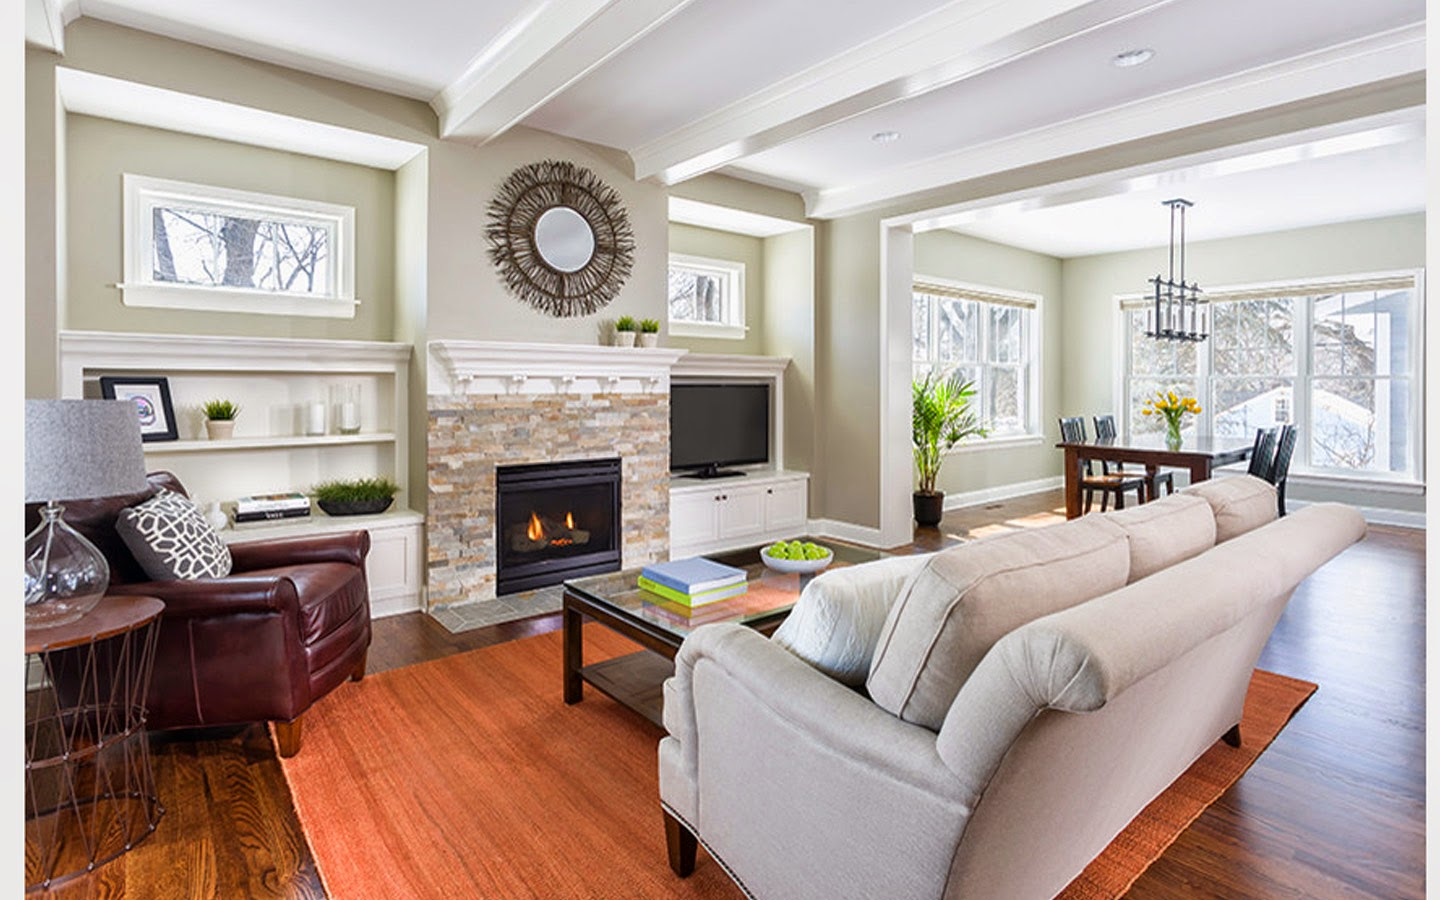 Home Interior Design Room And Picture House Traditional